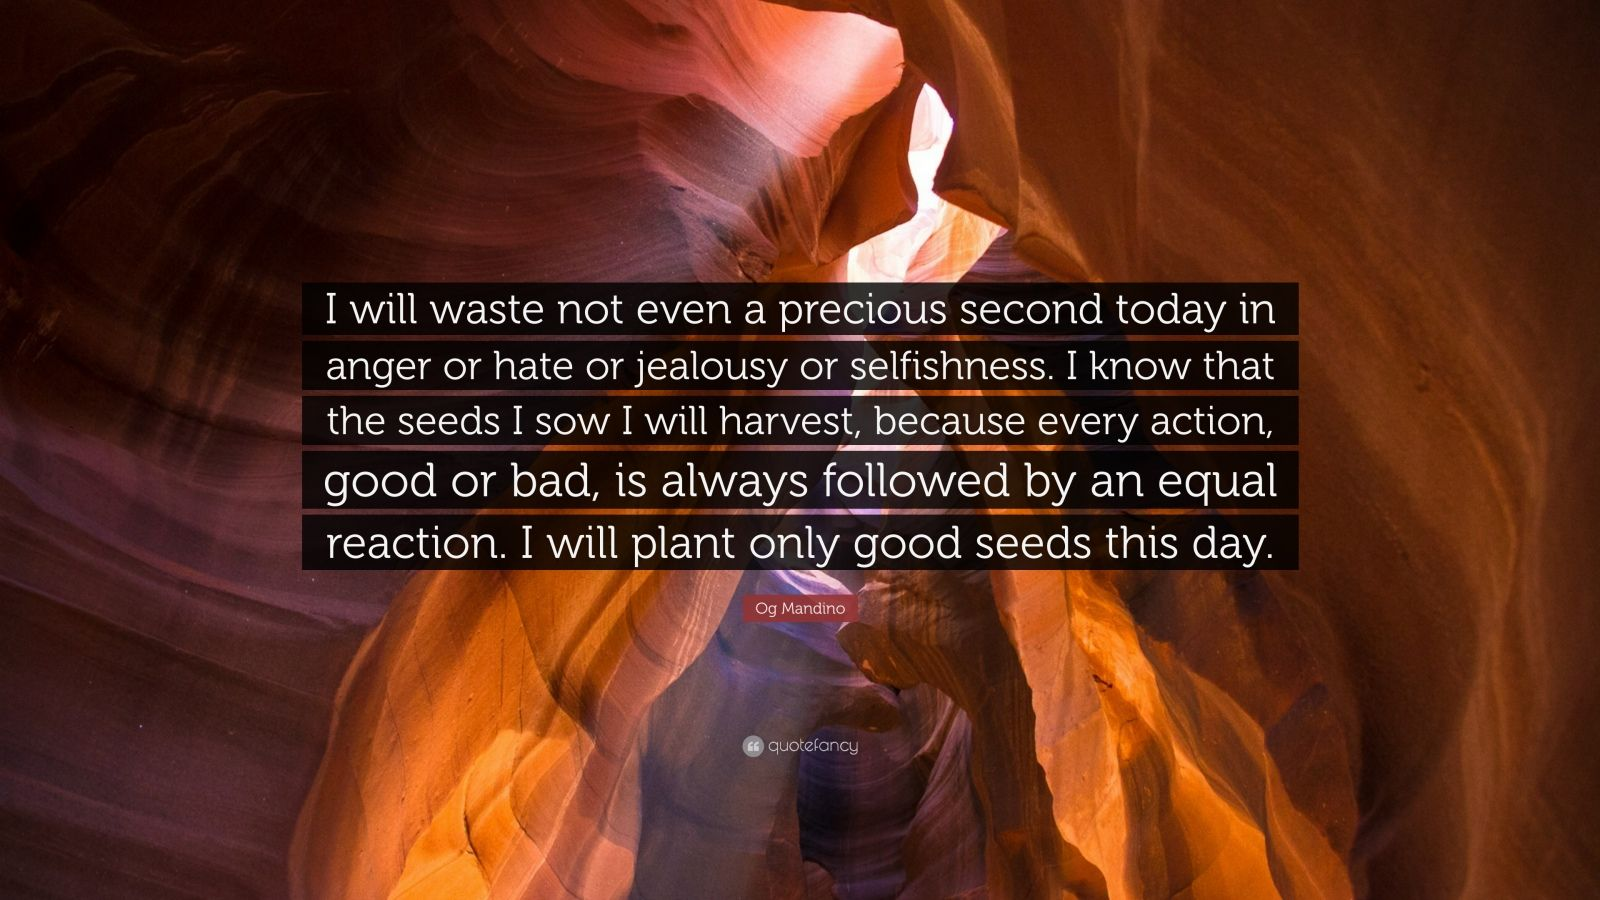 "Og Mandino Quote: ""I will waste not even a precious second today in anger or hate or jealousy or selfishness. I know that the seeds I sow I will harvest, because every action, good or bad, is always followed by an equal reaction. I will plant only good seeds this day."""